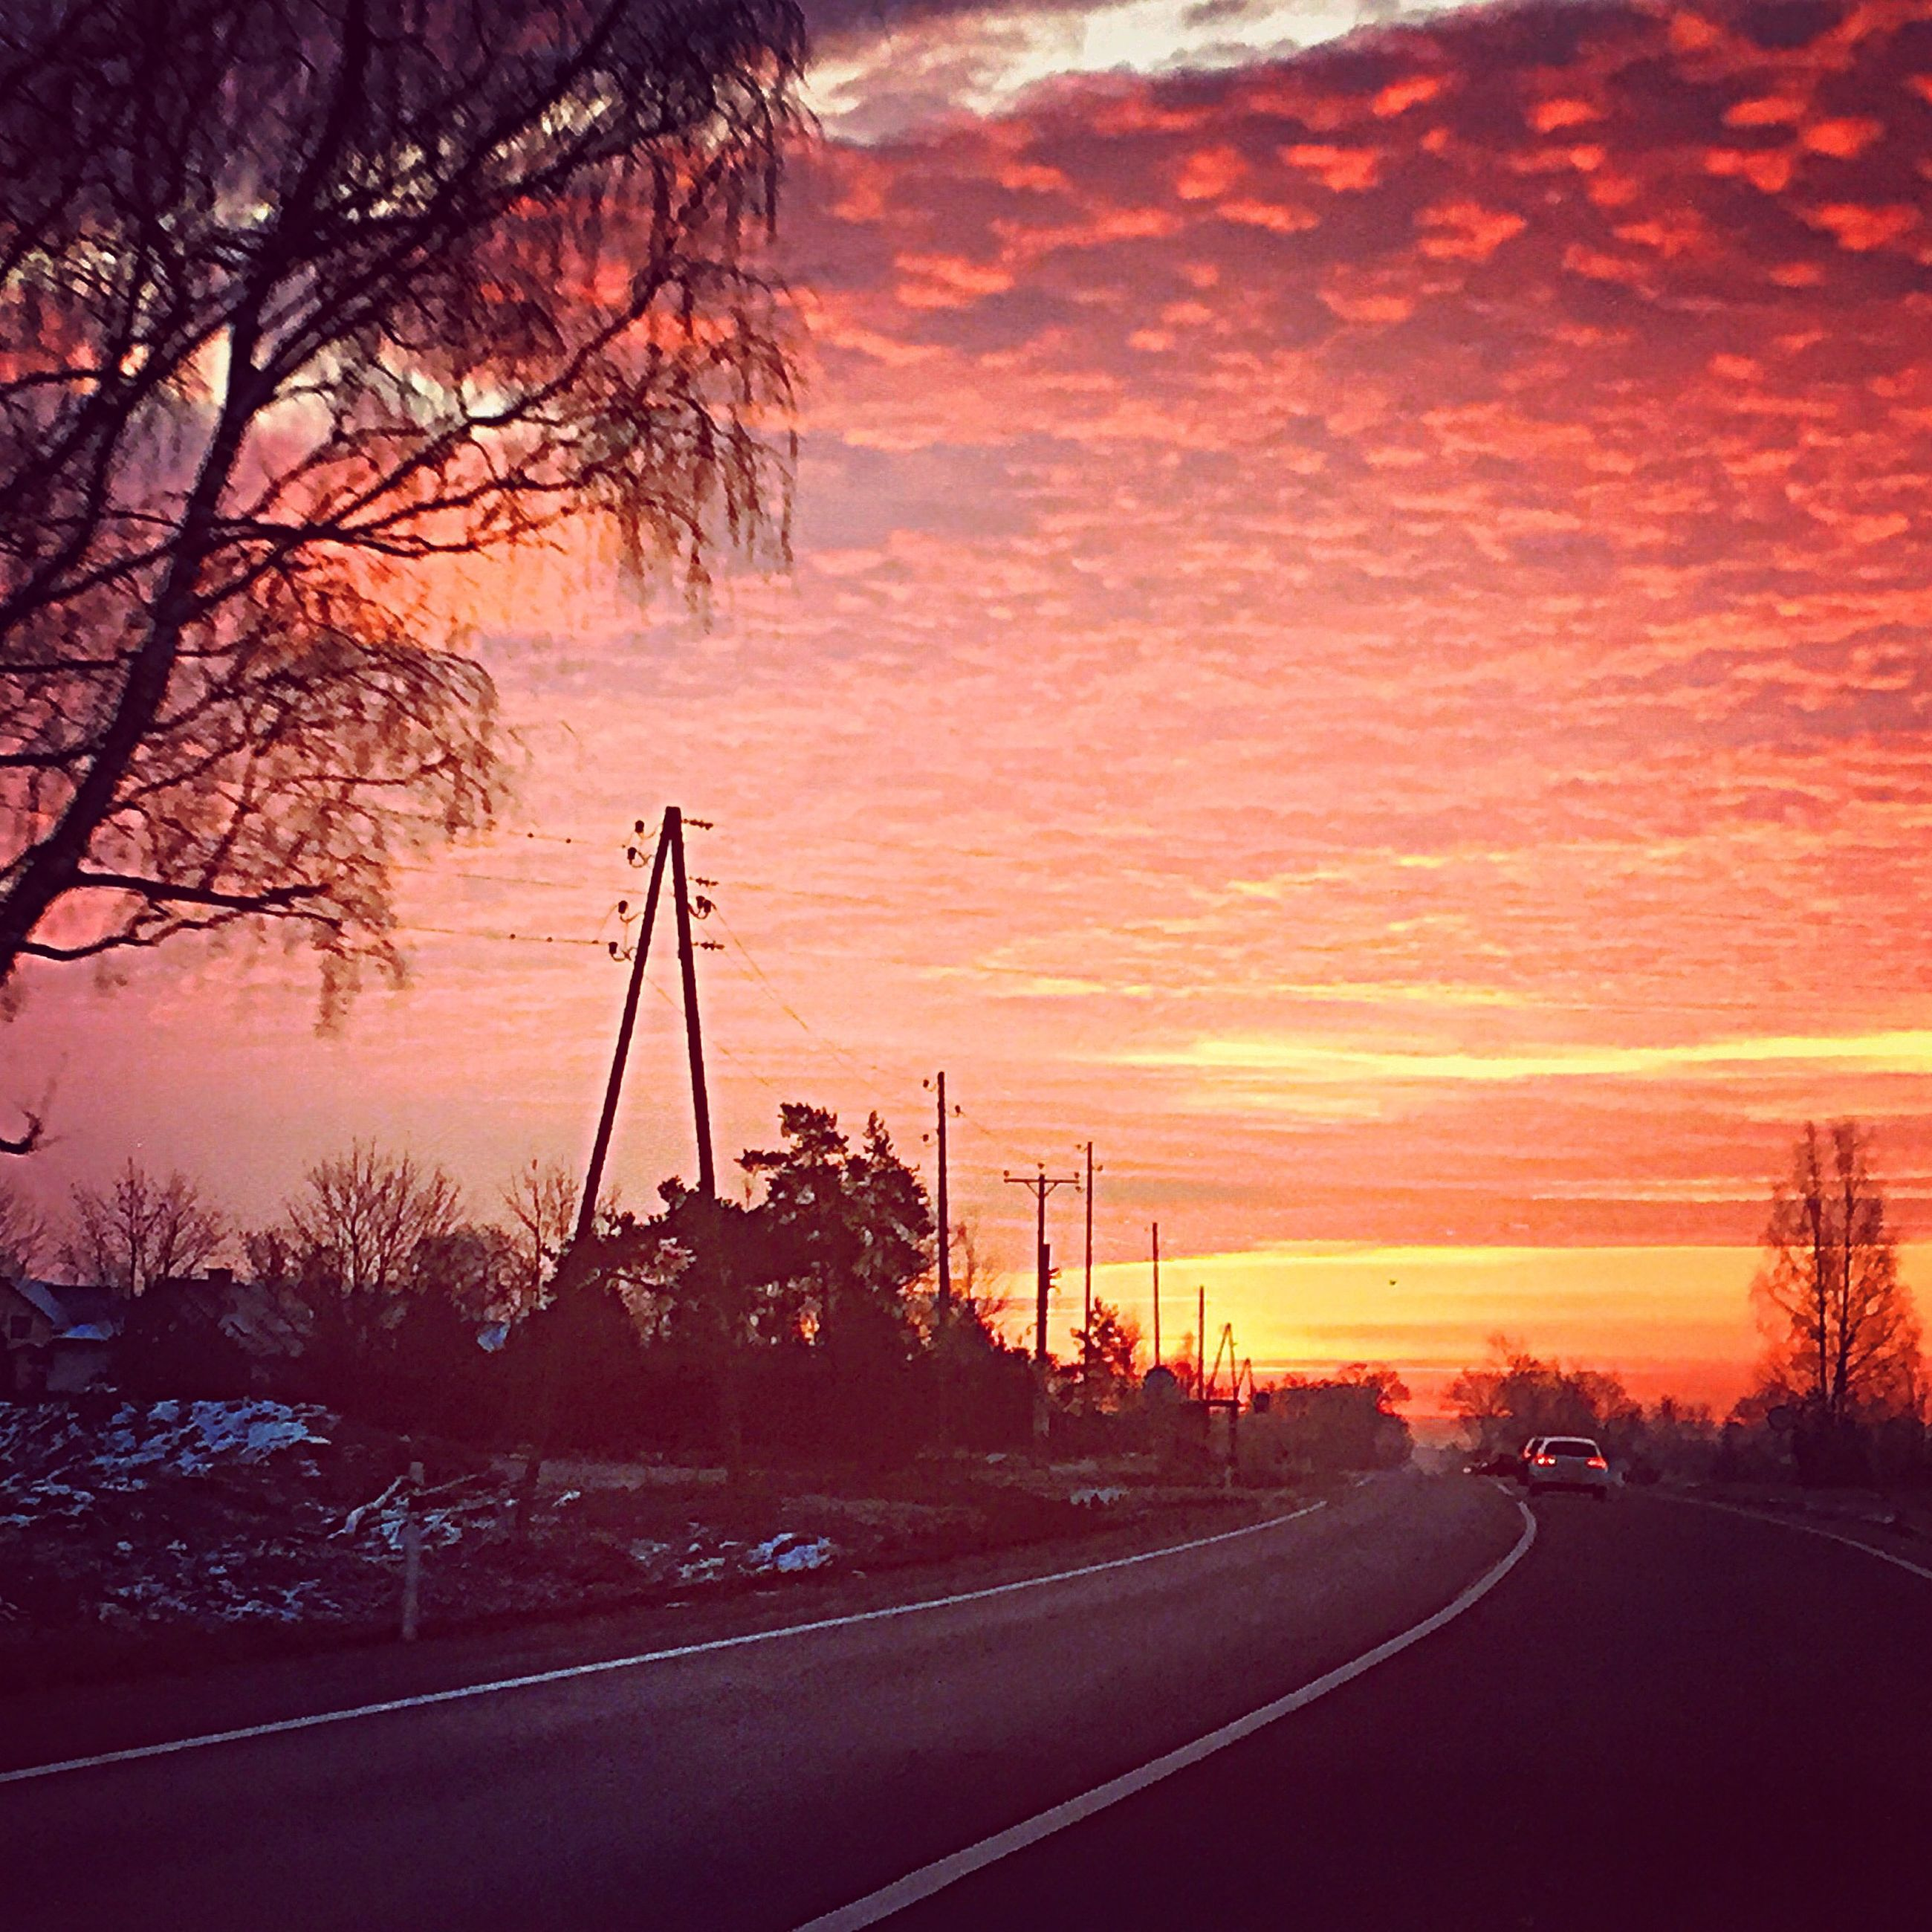 sunset, transportation, the way forward, road, orange color, sky, tree, silhouette, diminishing perspective, cloud - sky, dramatic sky, scenics, vanishing point, beauty in nature, nature, tranquility, tranquil scene, bare tree, road marking, electricity pylon